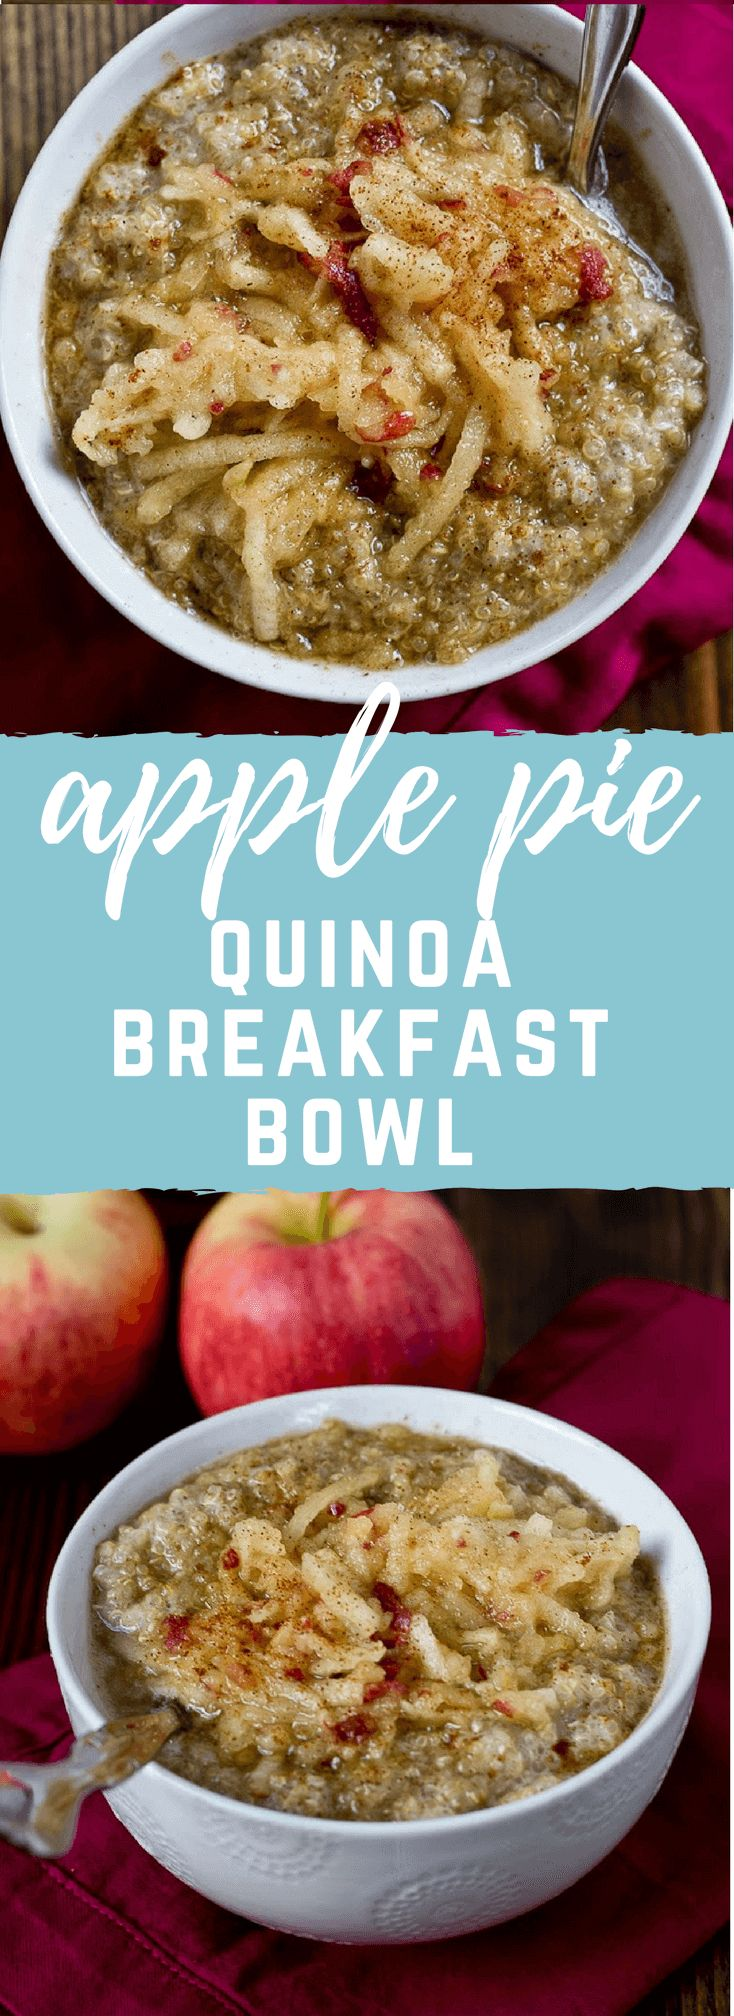 This Apple Pie Quinoa Breakfast Bowl will make your fall weather loving life. It's spicy and topped with shredded apples, FTW.